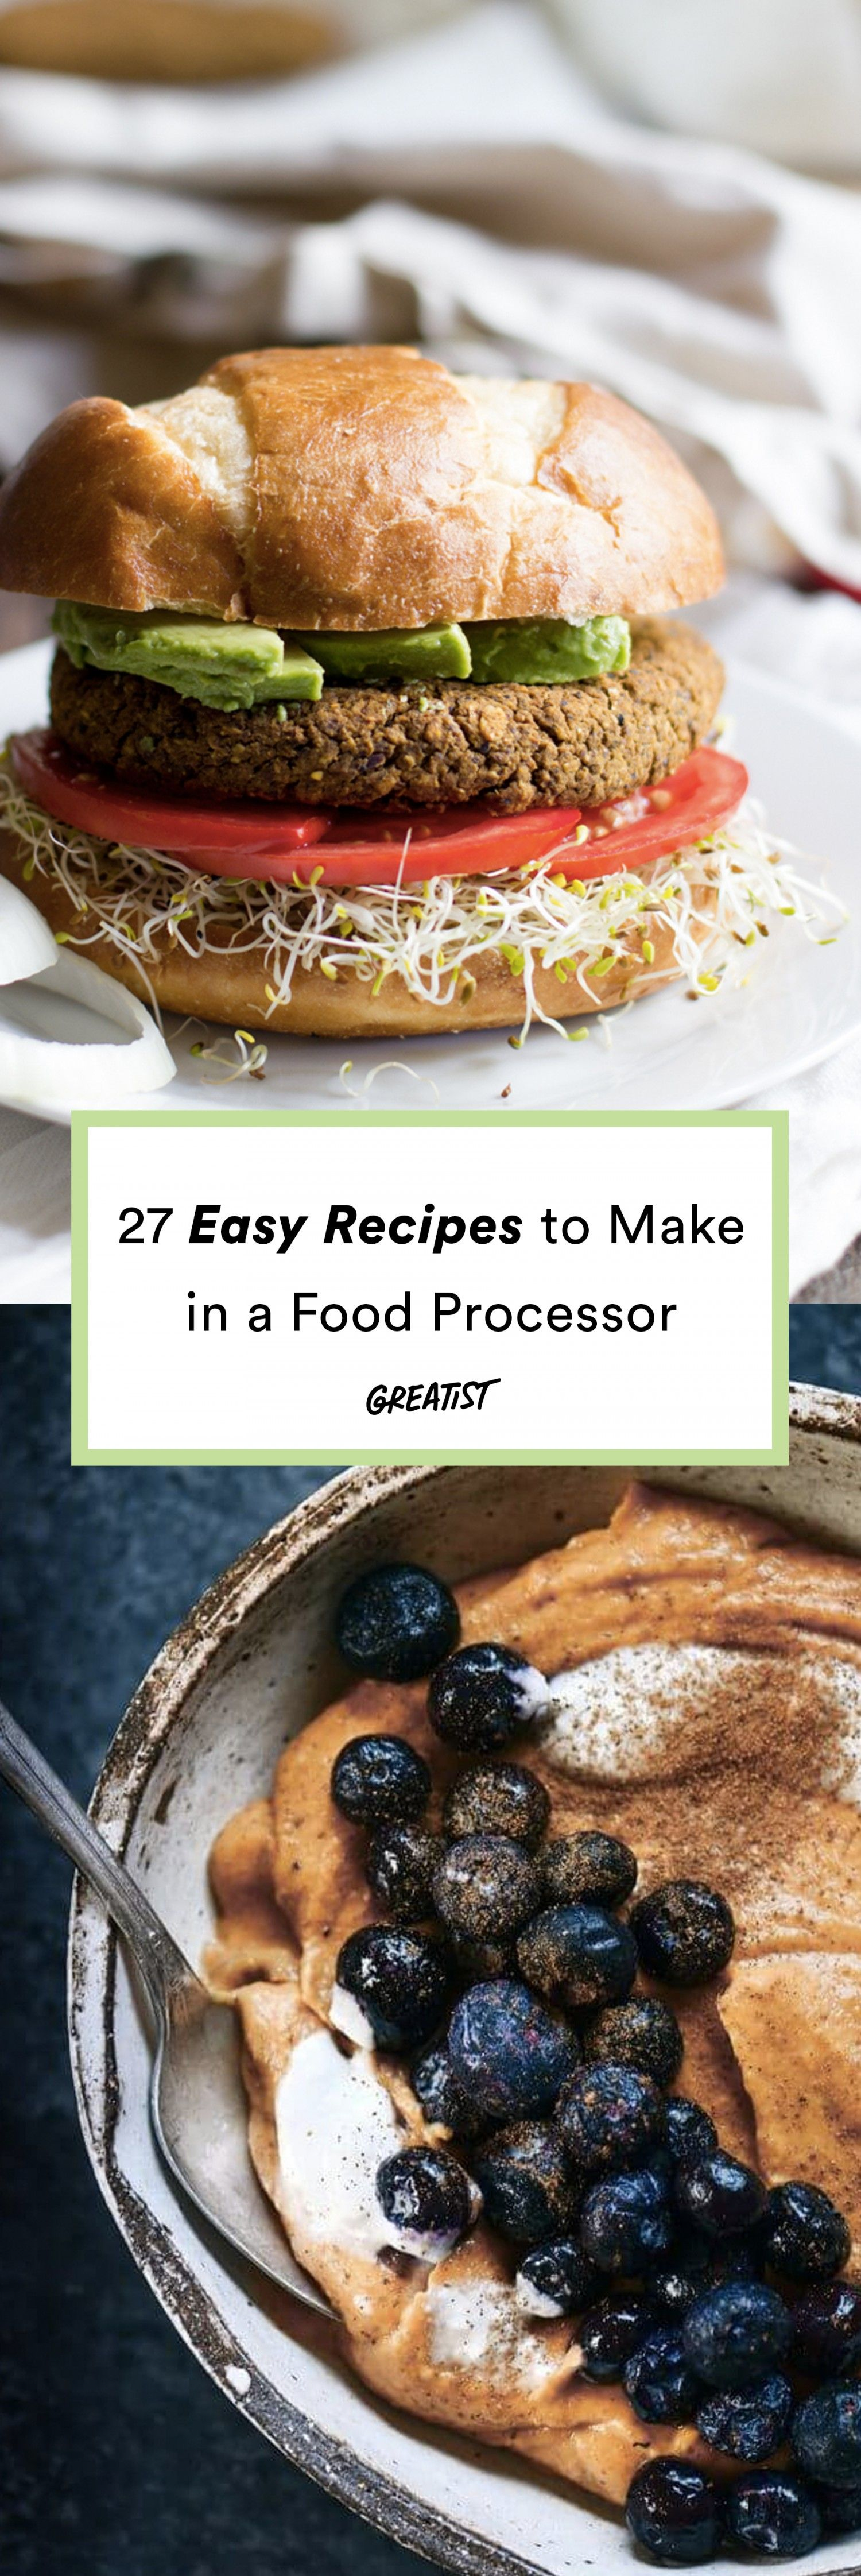 27 Food Processor Recipes That Will Motivate You to